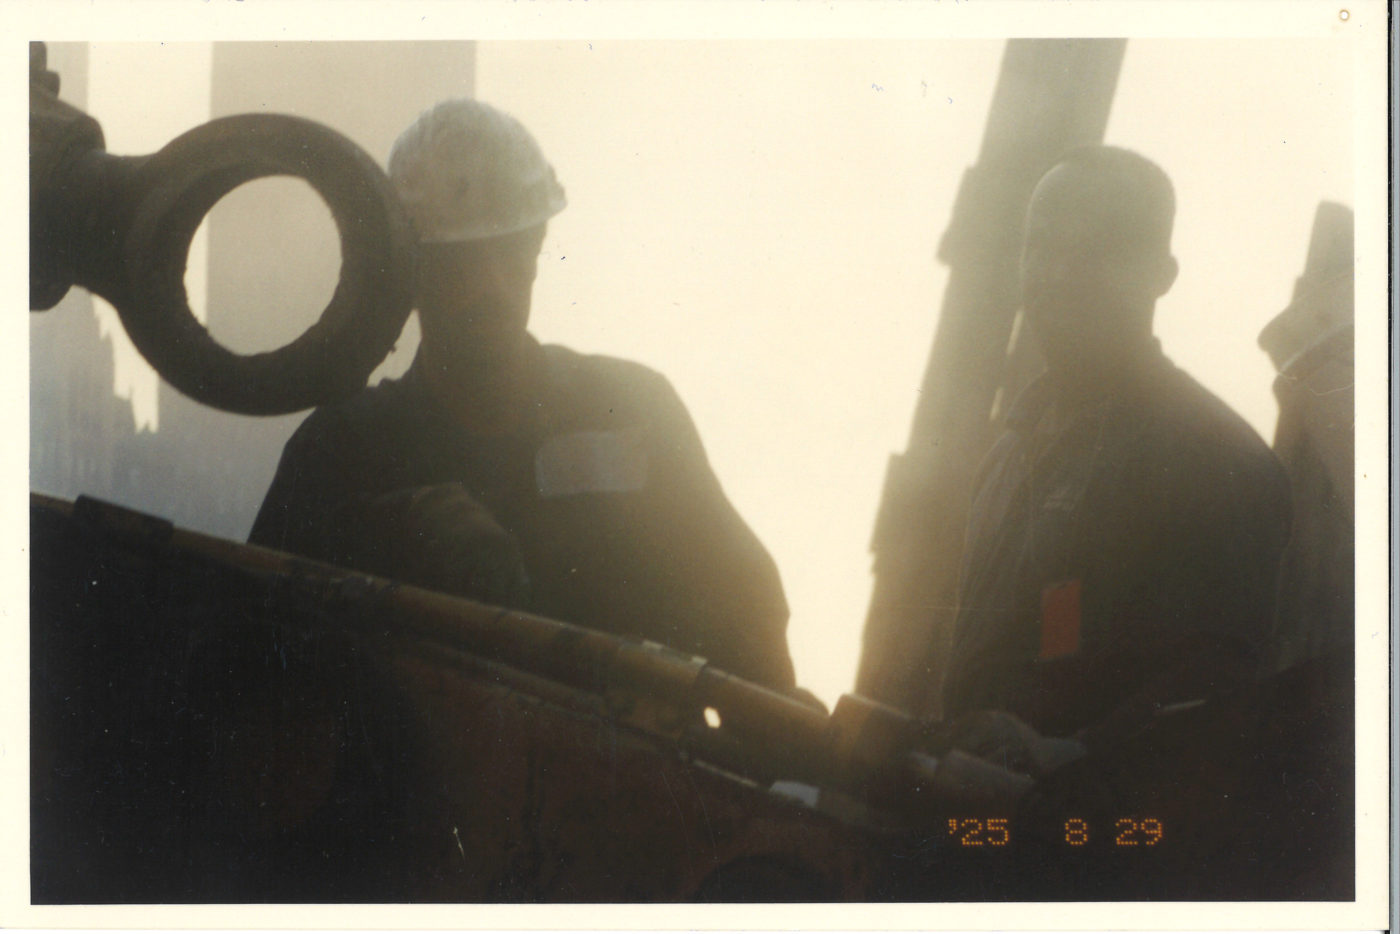 Two Workers with the Sun from Behind at Ground Zero